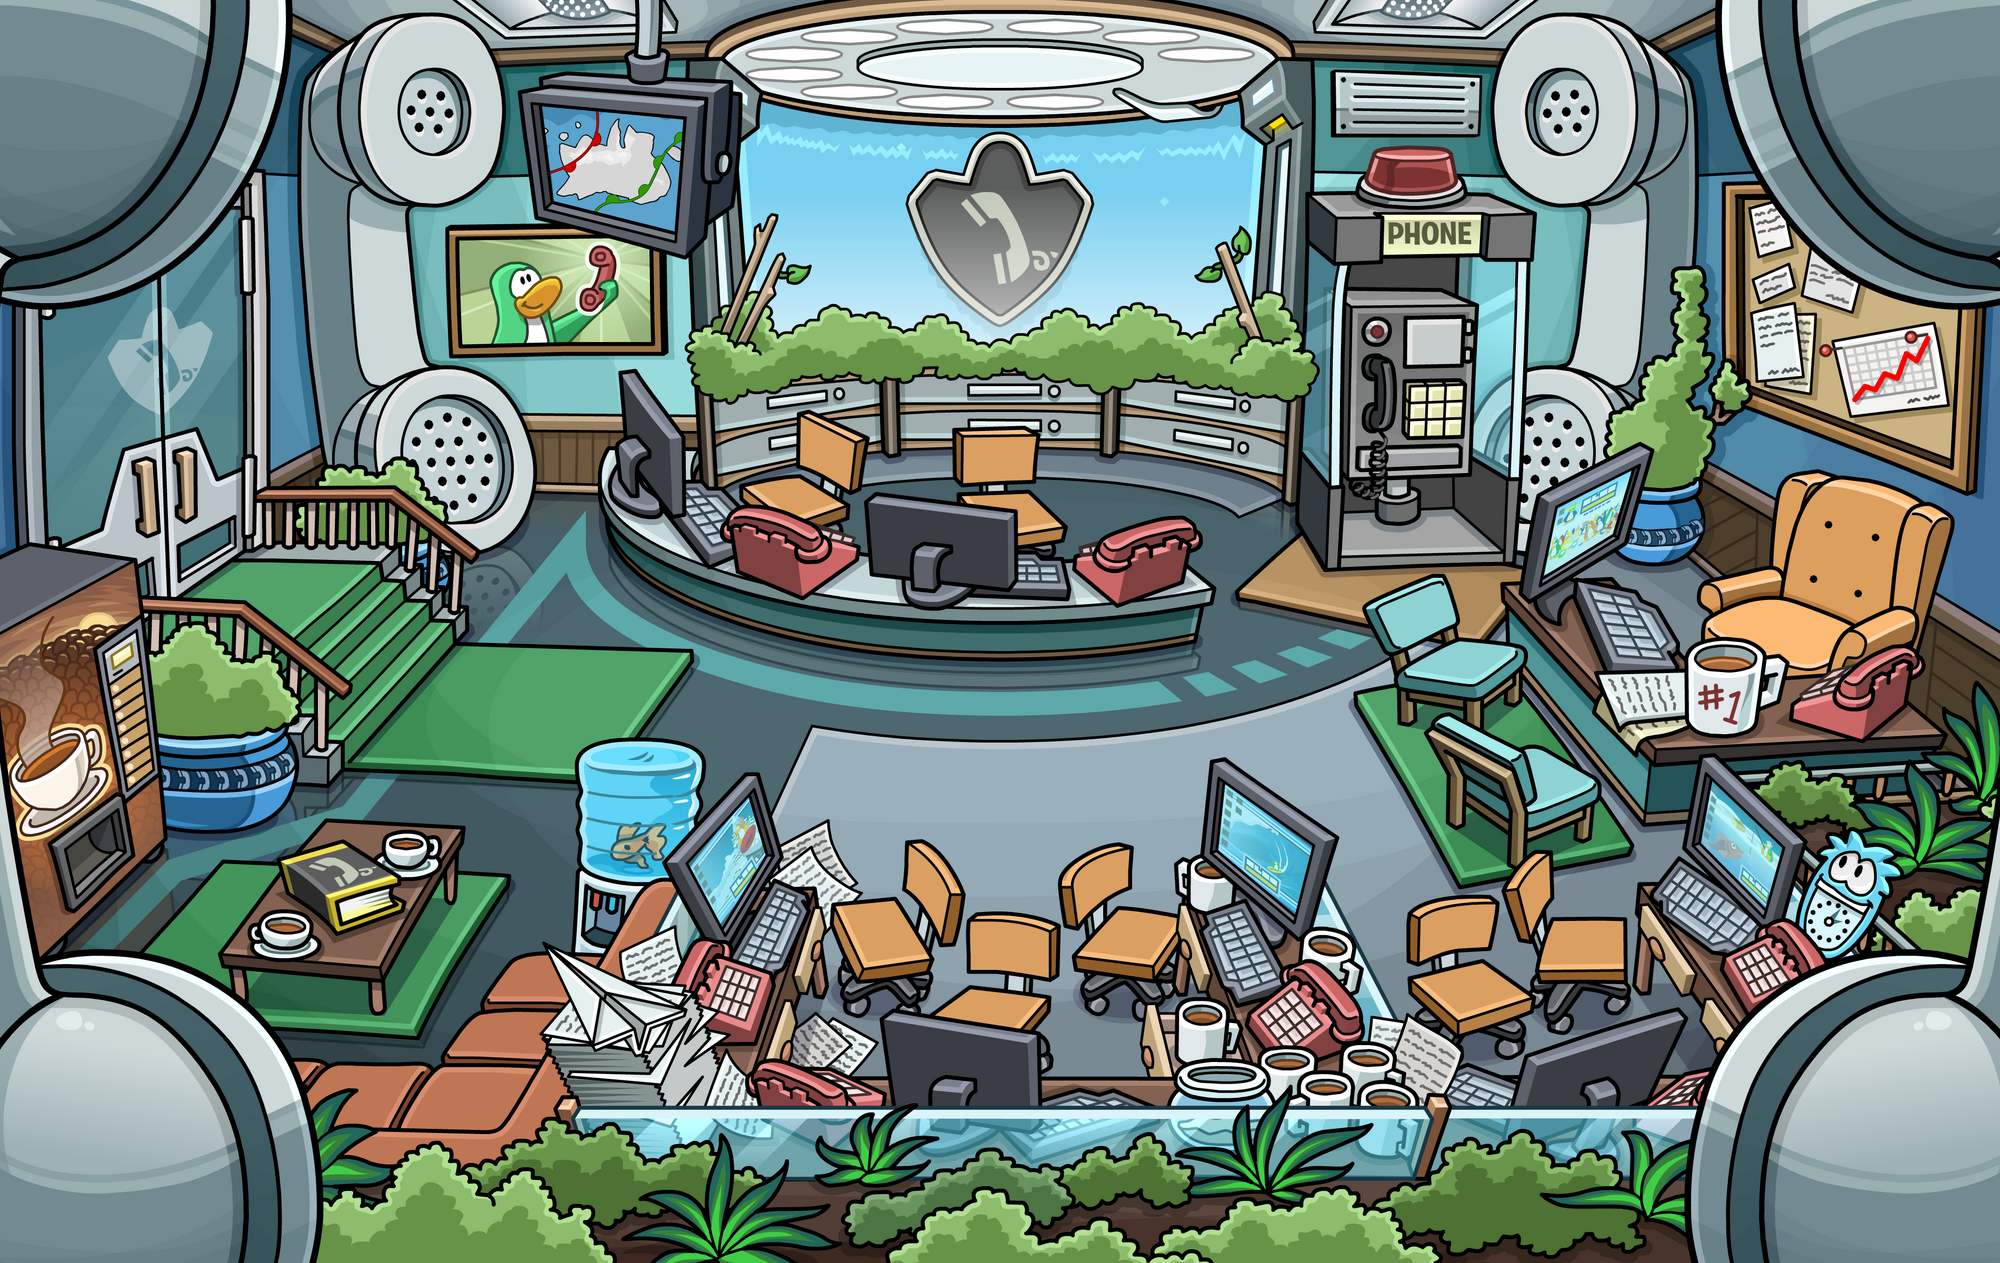 how to solve fuse box on club penguin club penguin rewritten club penguin fuse box mission at Club Penguin Fuse Box